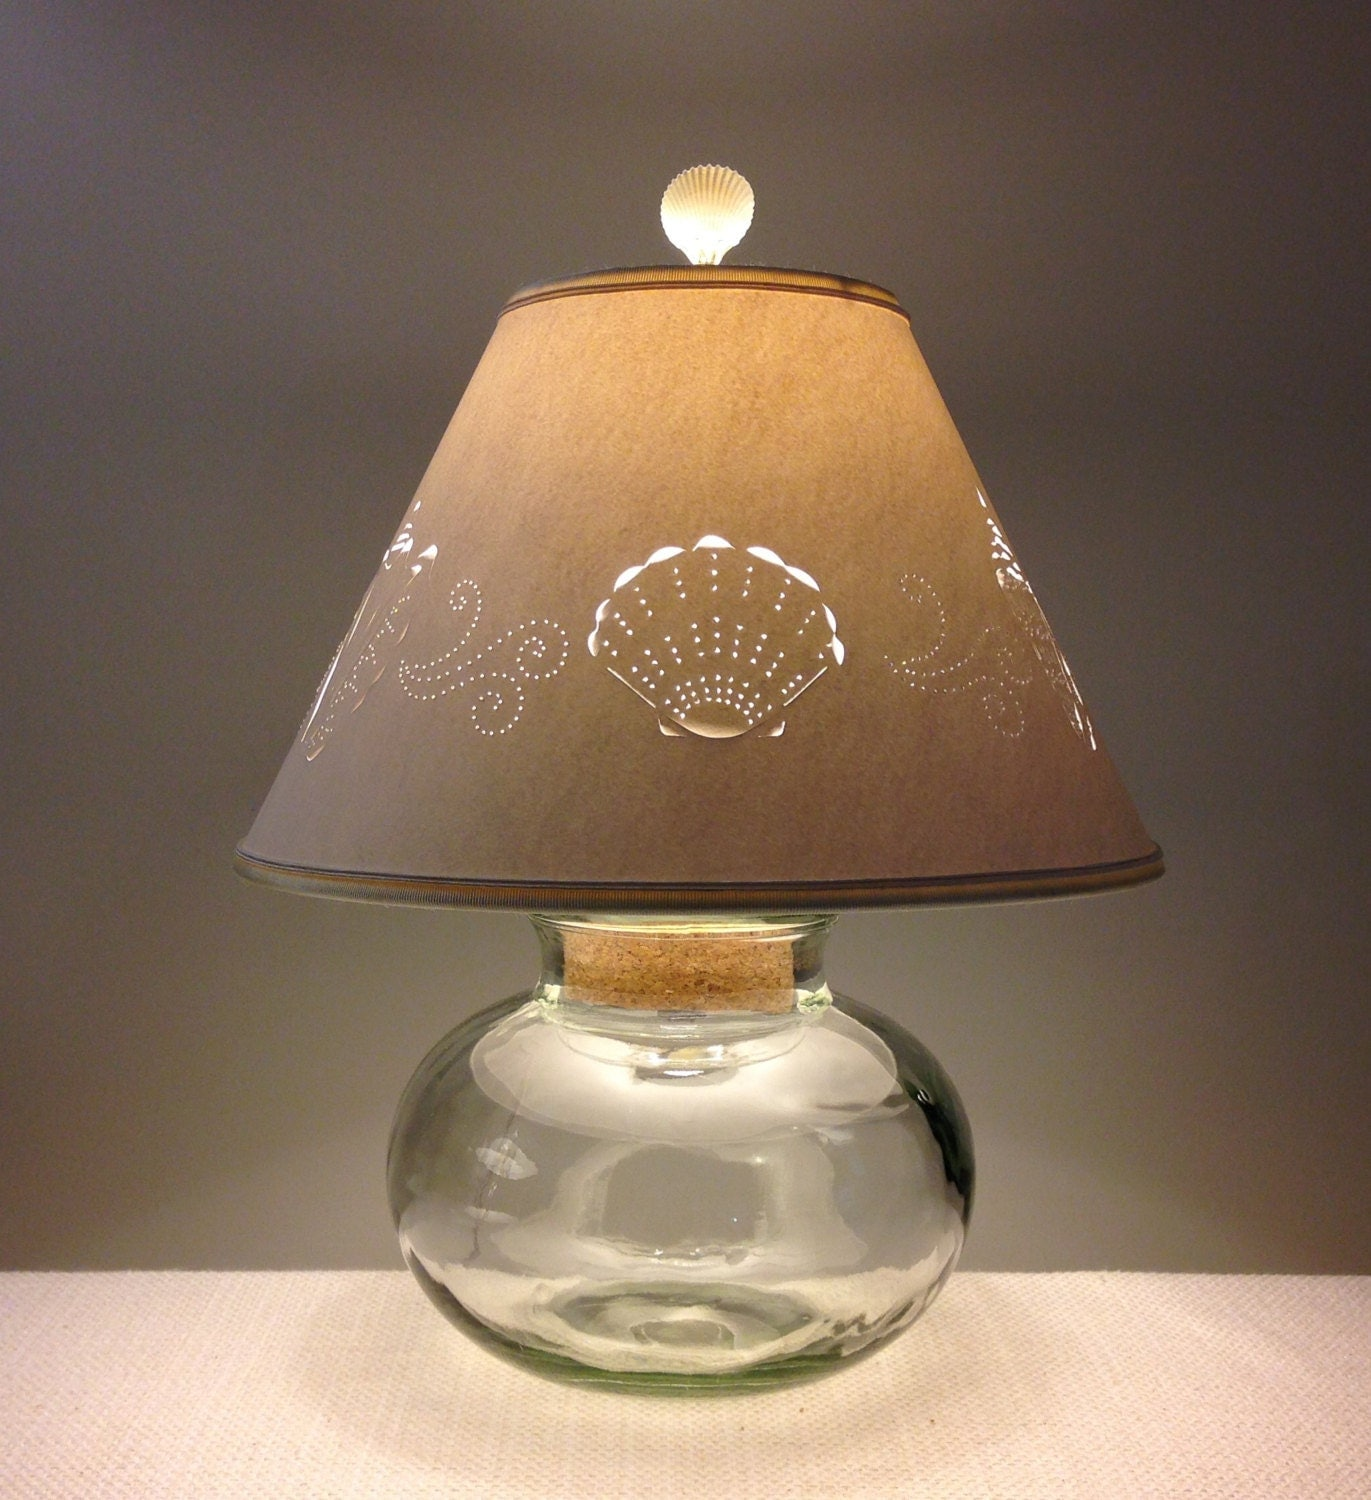 recycled glass lamp base seashell lampshade fillable. Black Bedroom Furniture Sets. Home Design Ideas